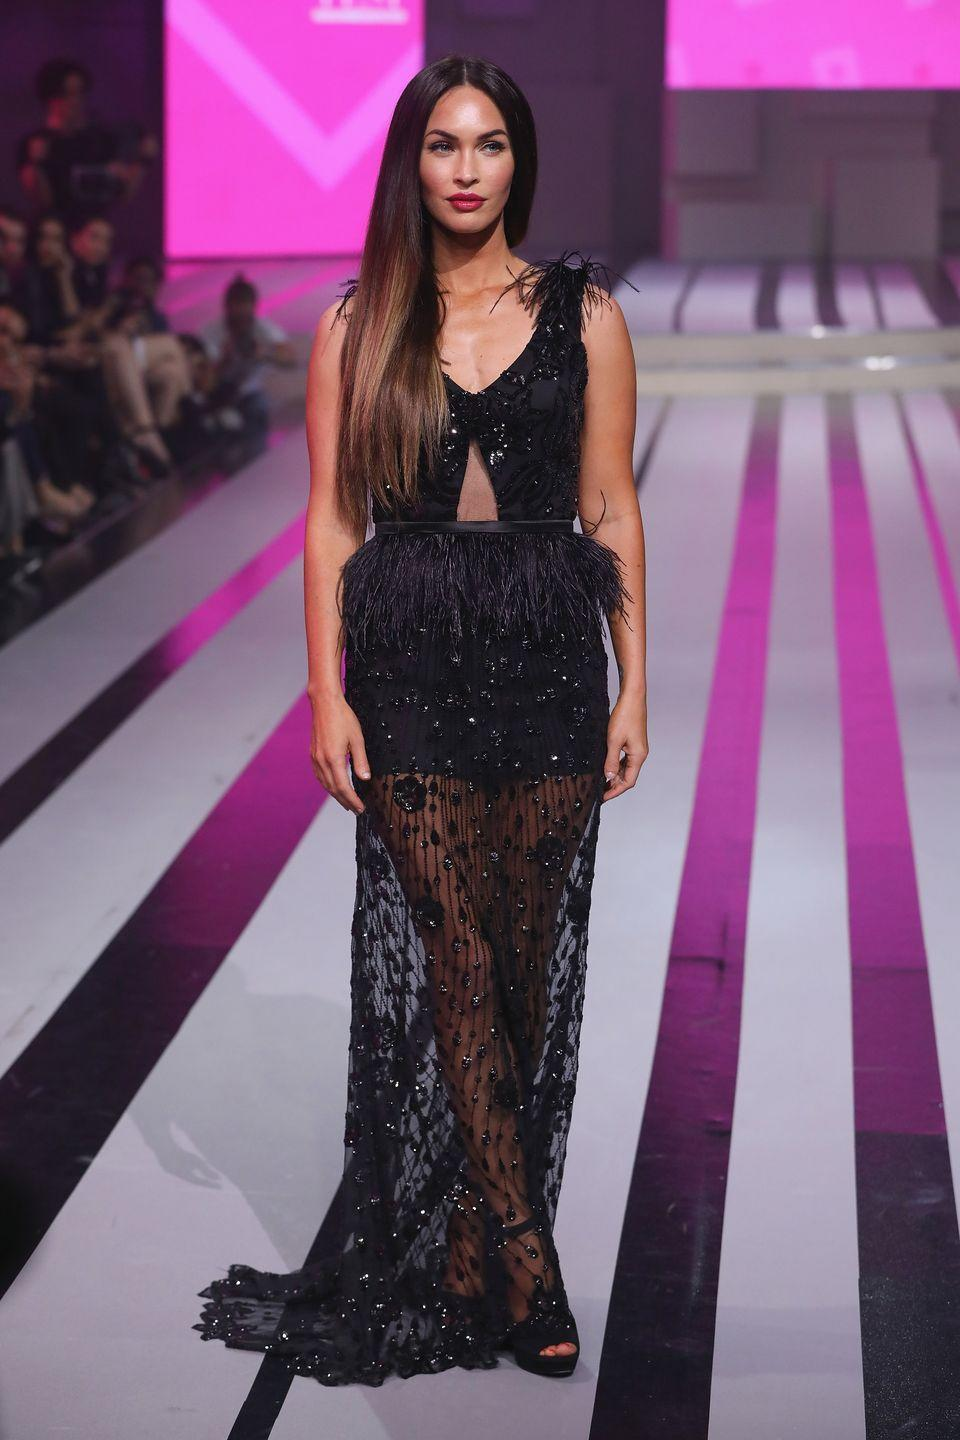 <p>Fox walked the runway during the Liverpool Fashion Fest at Fronton Mexico in a black lace and feathered long dress.</p>